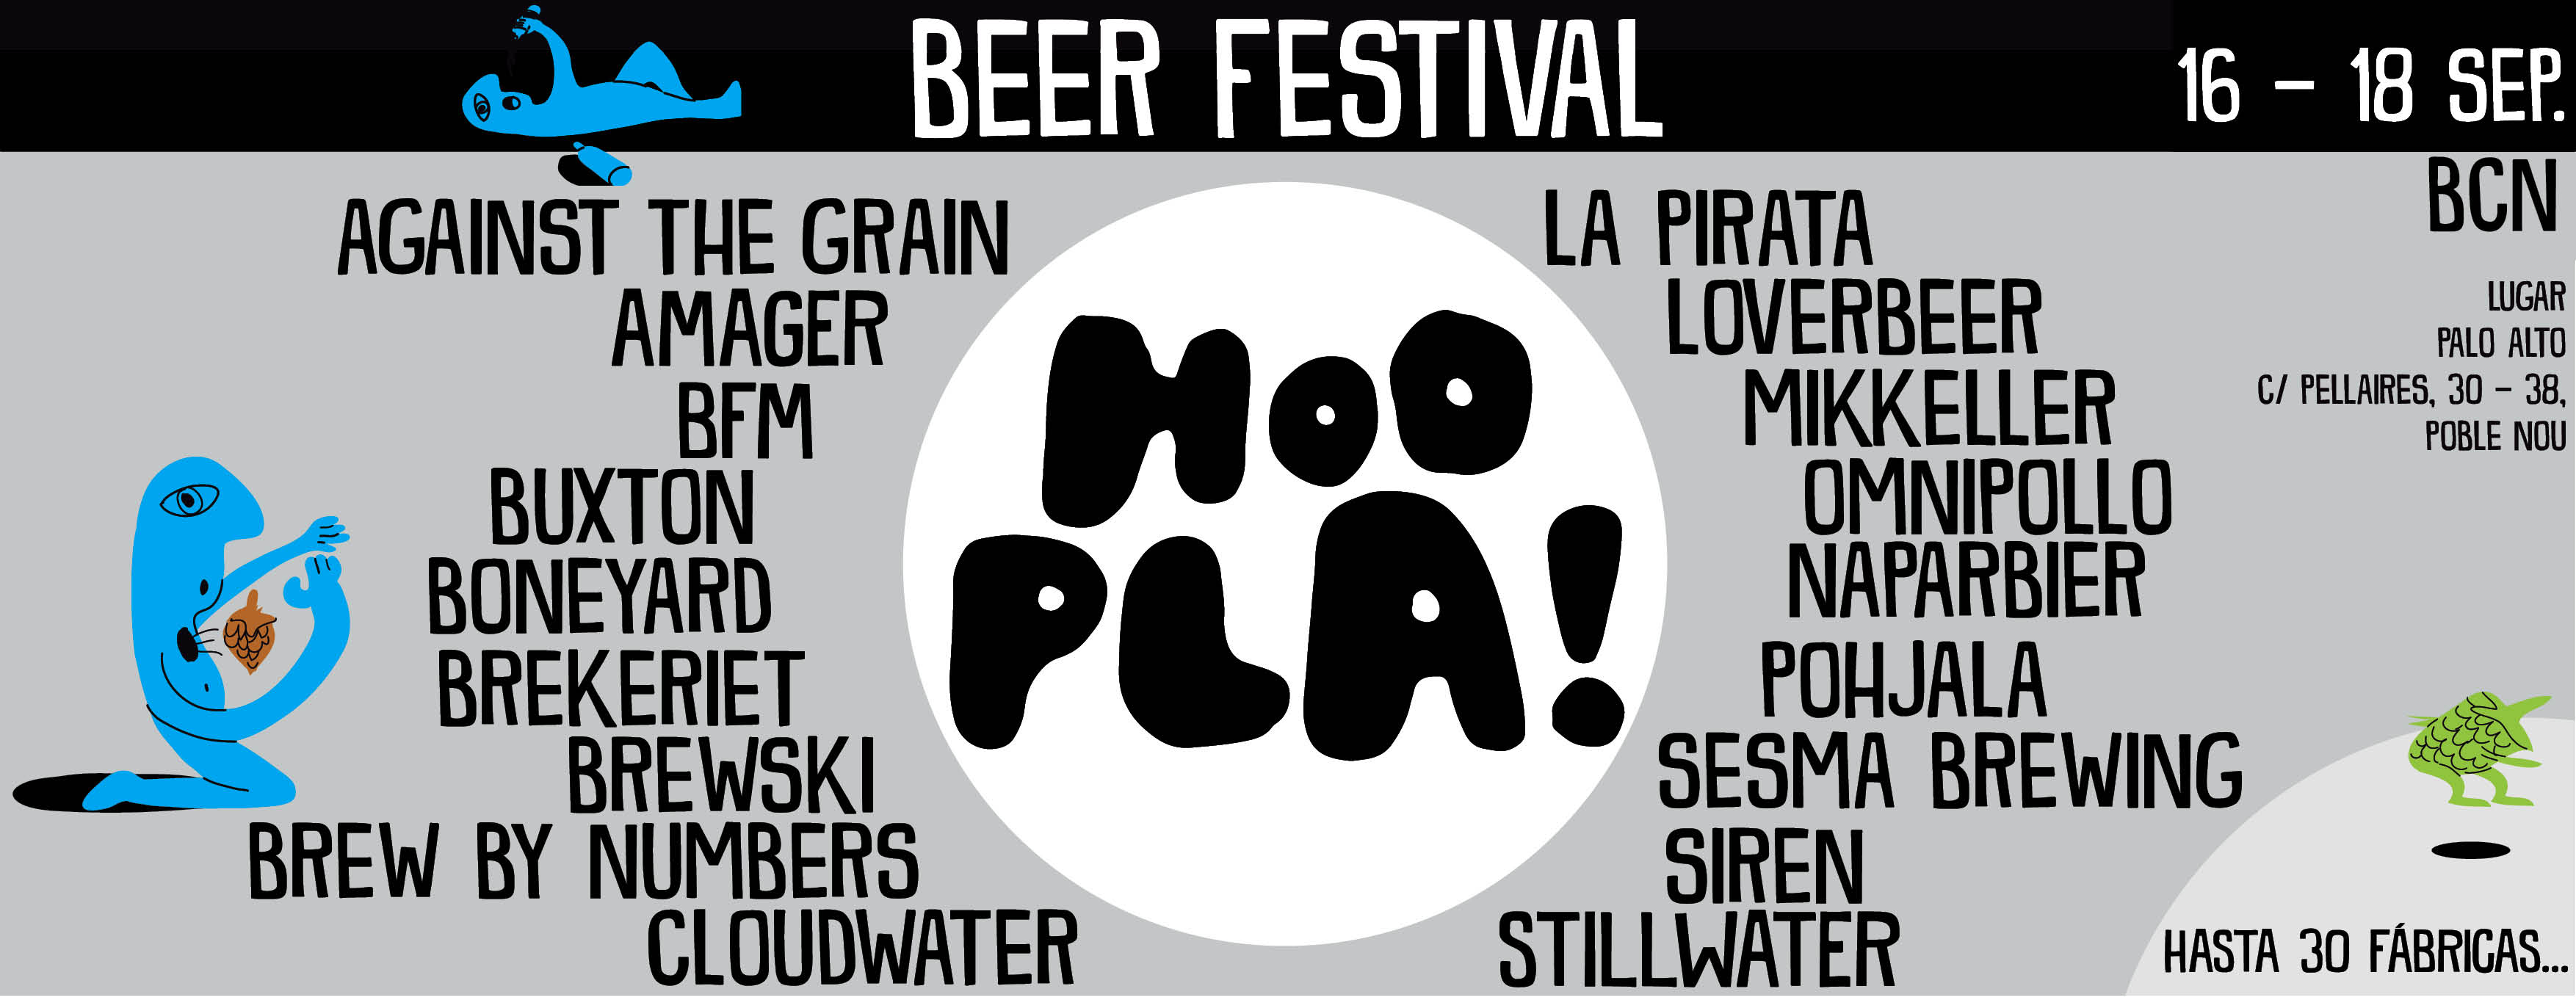 HOOPLA BEER FESTIVAL